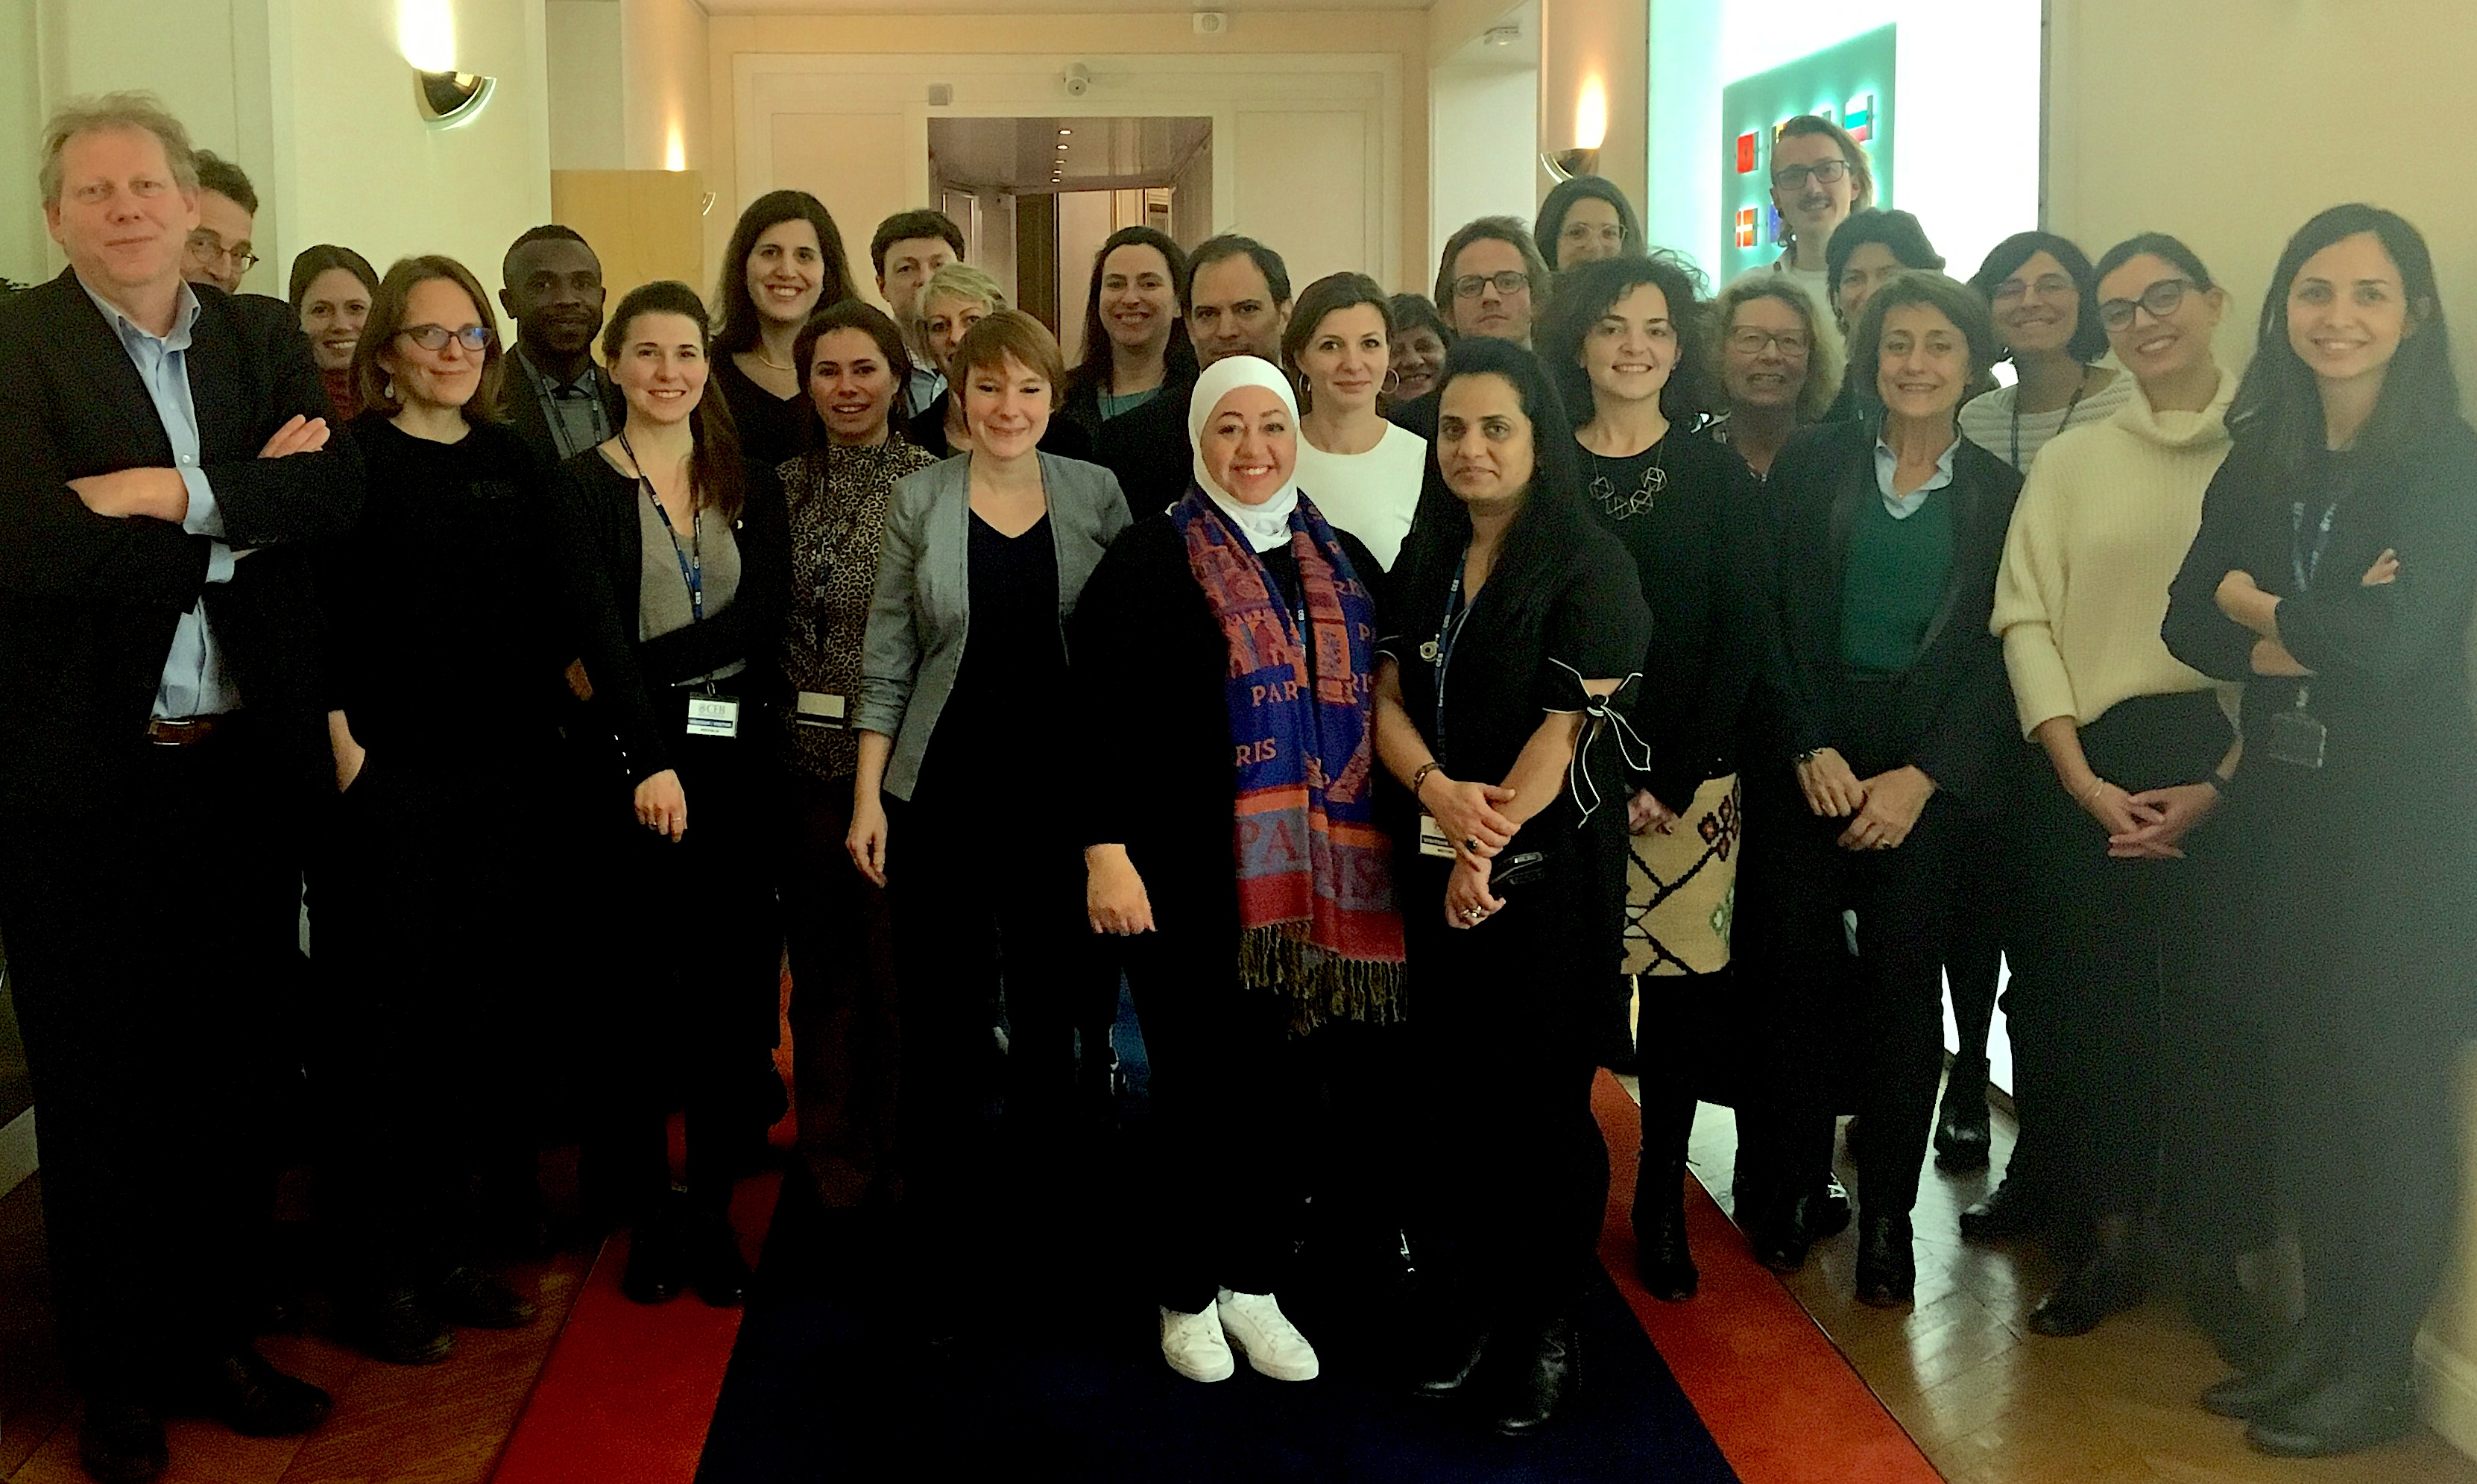 Group picture of the Inclusion of Migrants and Refugees Partnership at the 13th meeting in Paris in February 2019